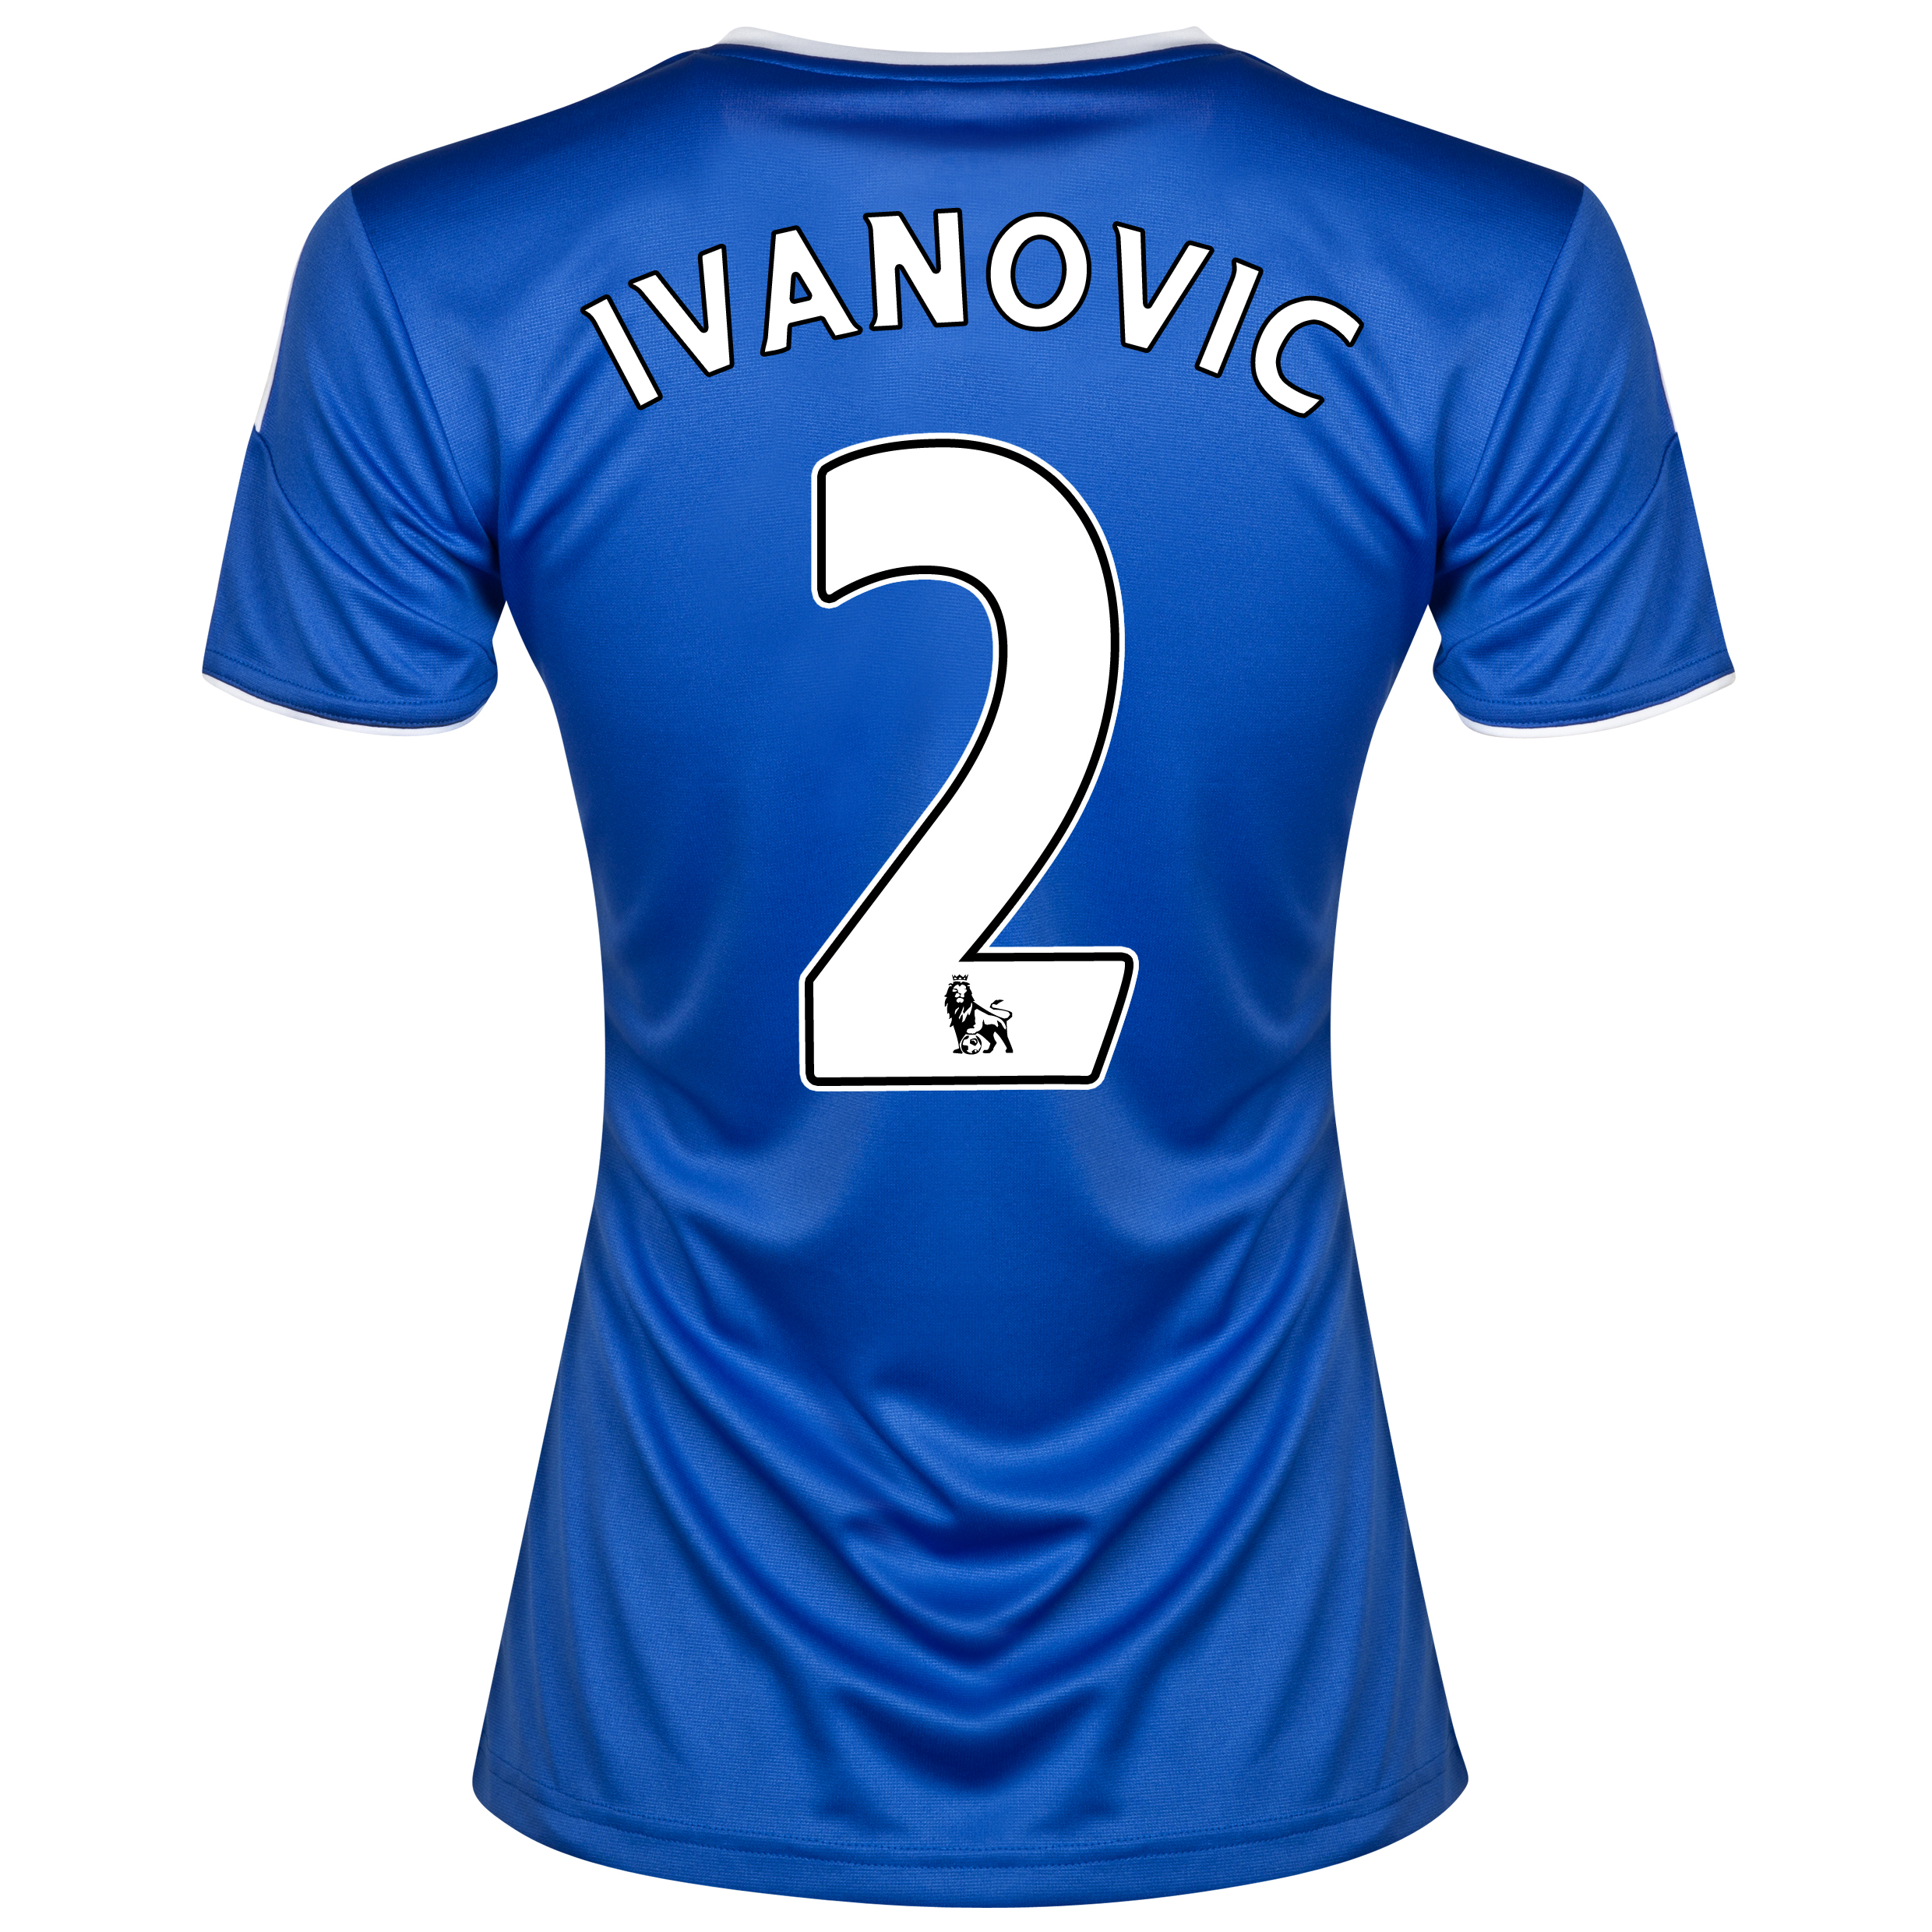 Chelsea Home Shirt 2013/14- Womens with Ivanovic 2 printing